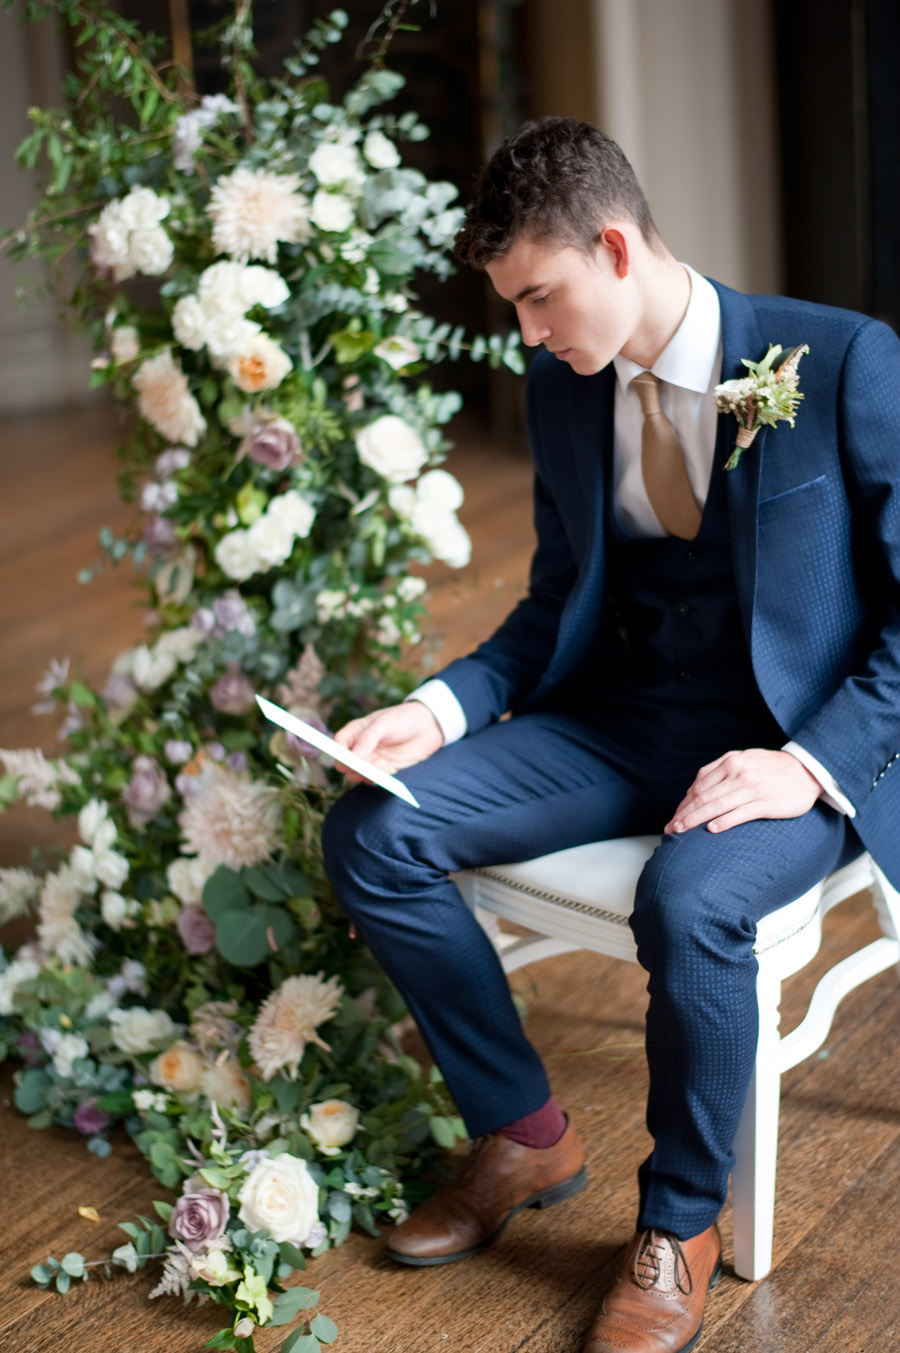 Luxe, modern wedding style ideas by Natalie Hewitt, image credit Rachael Connerton Photography (4)